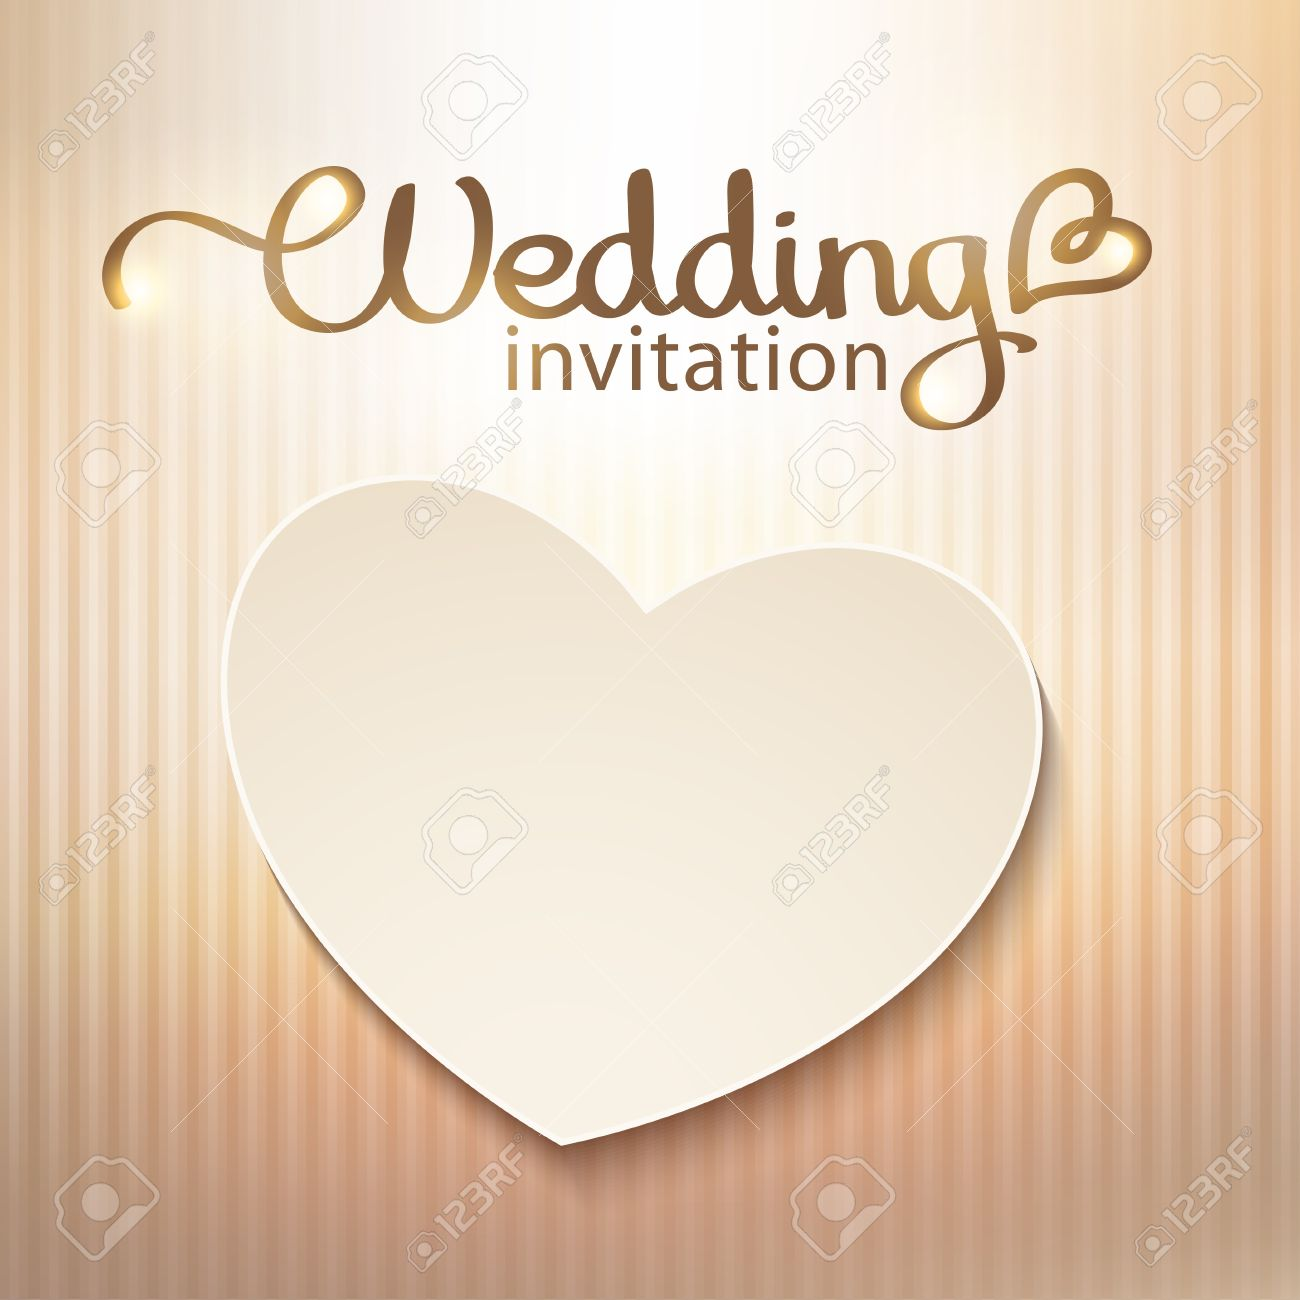 wedding invitation with paper heart and gold background royalty free